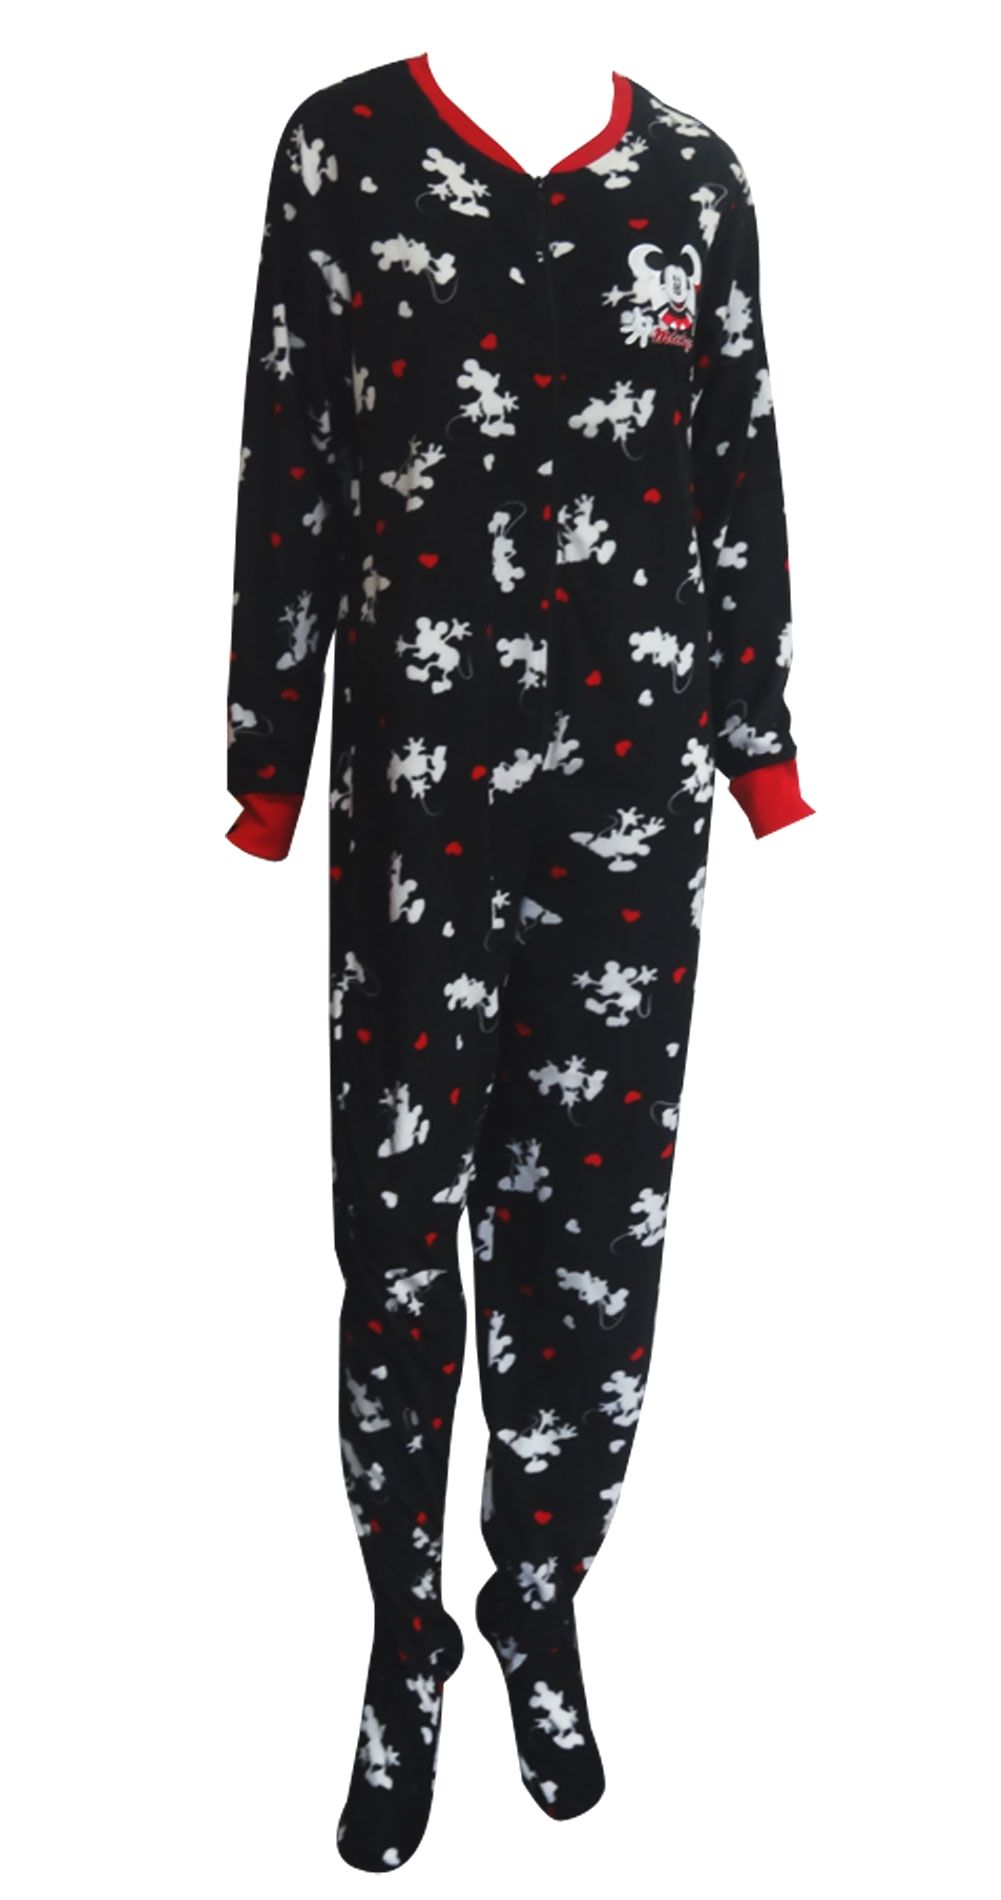 3318cb1cc3c7 Disney's Mickey Mouse Black Onesie Footie Pajama The perfect jammies for  any Disney fan! These pajamas for women feature Disney.